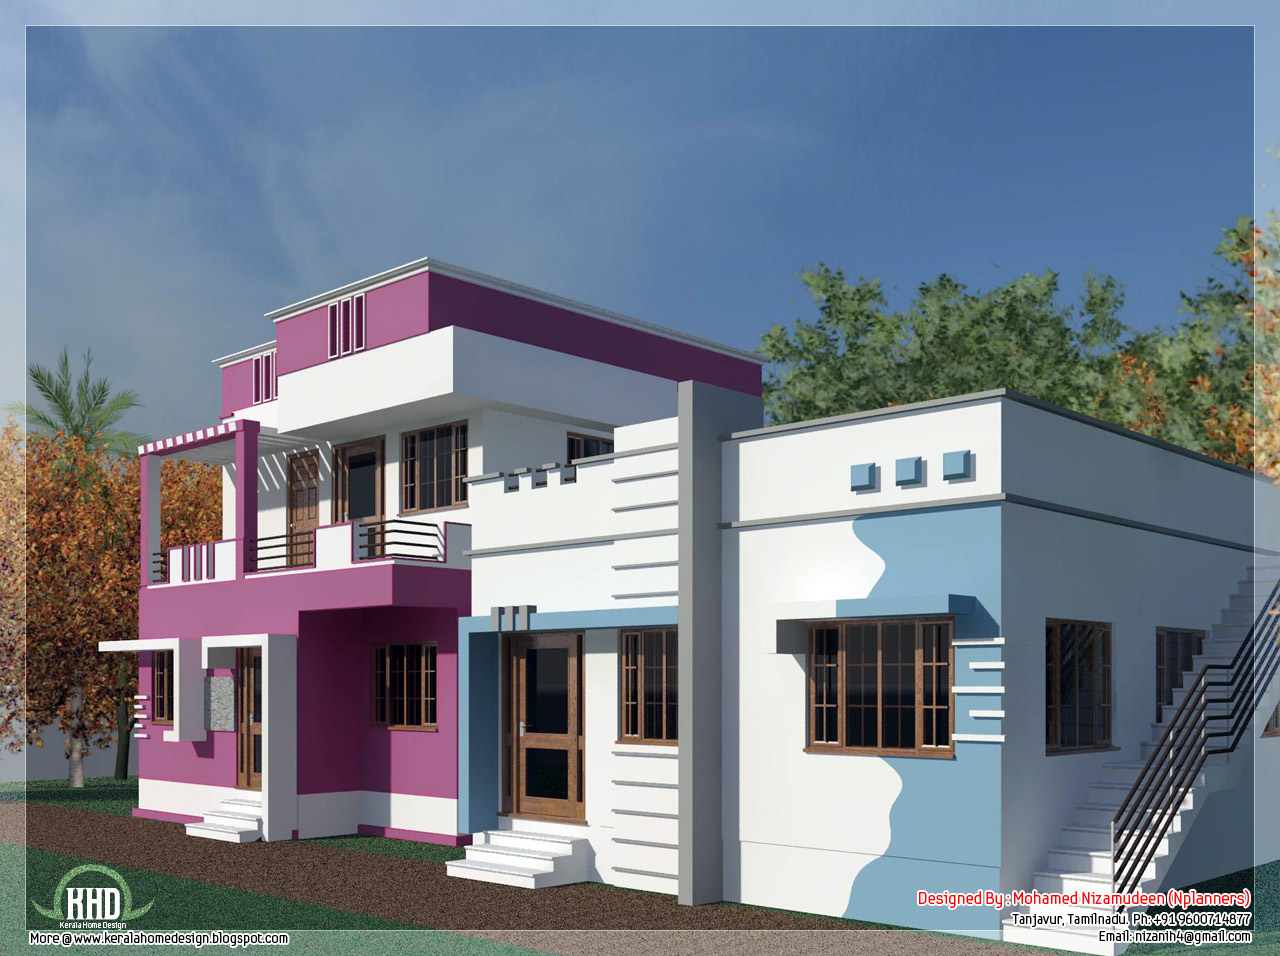 Tamilnadu model home design in 3000 kerala home for Home models in tamilnadu pictures